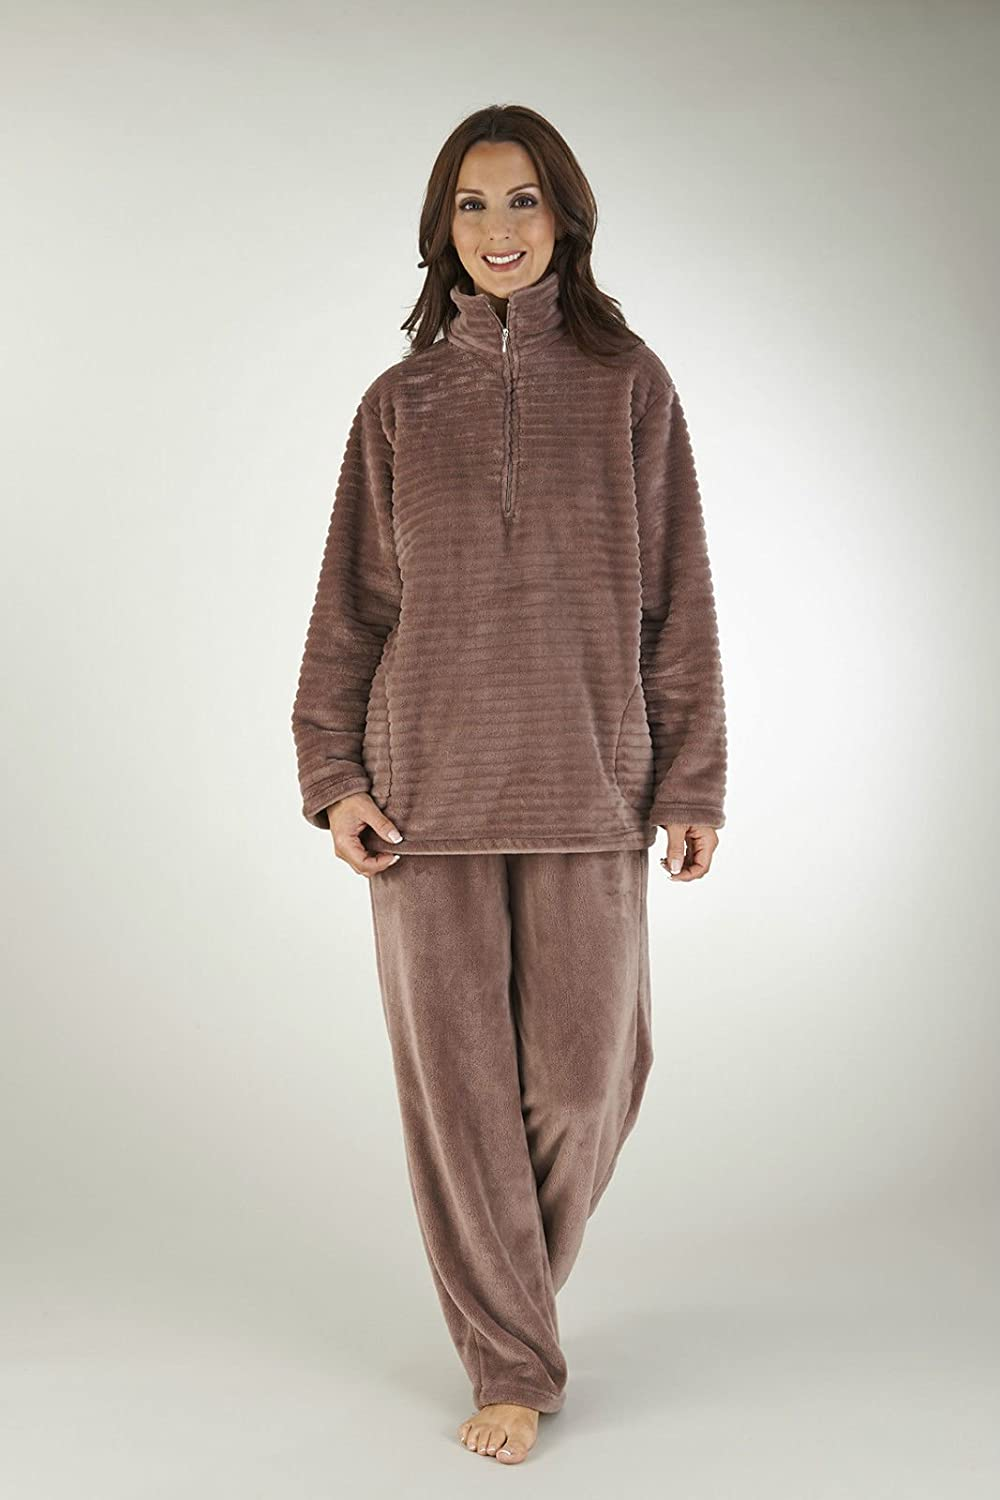 Slenderella Luxury Stripe Fleece Pyjamas - Black, Taupe, Cream - S/M/L/XL